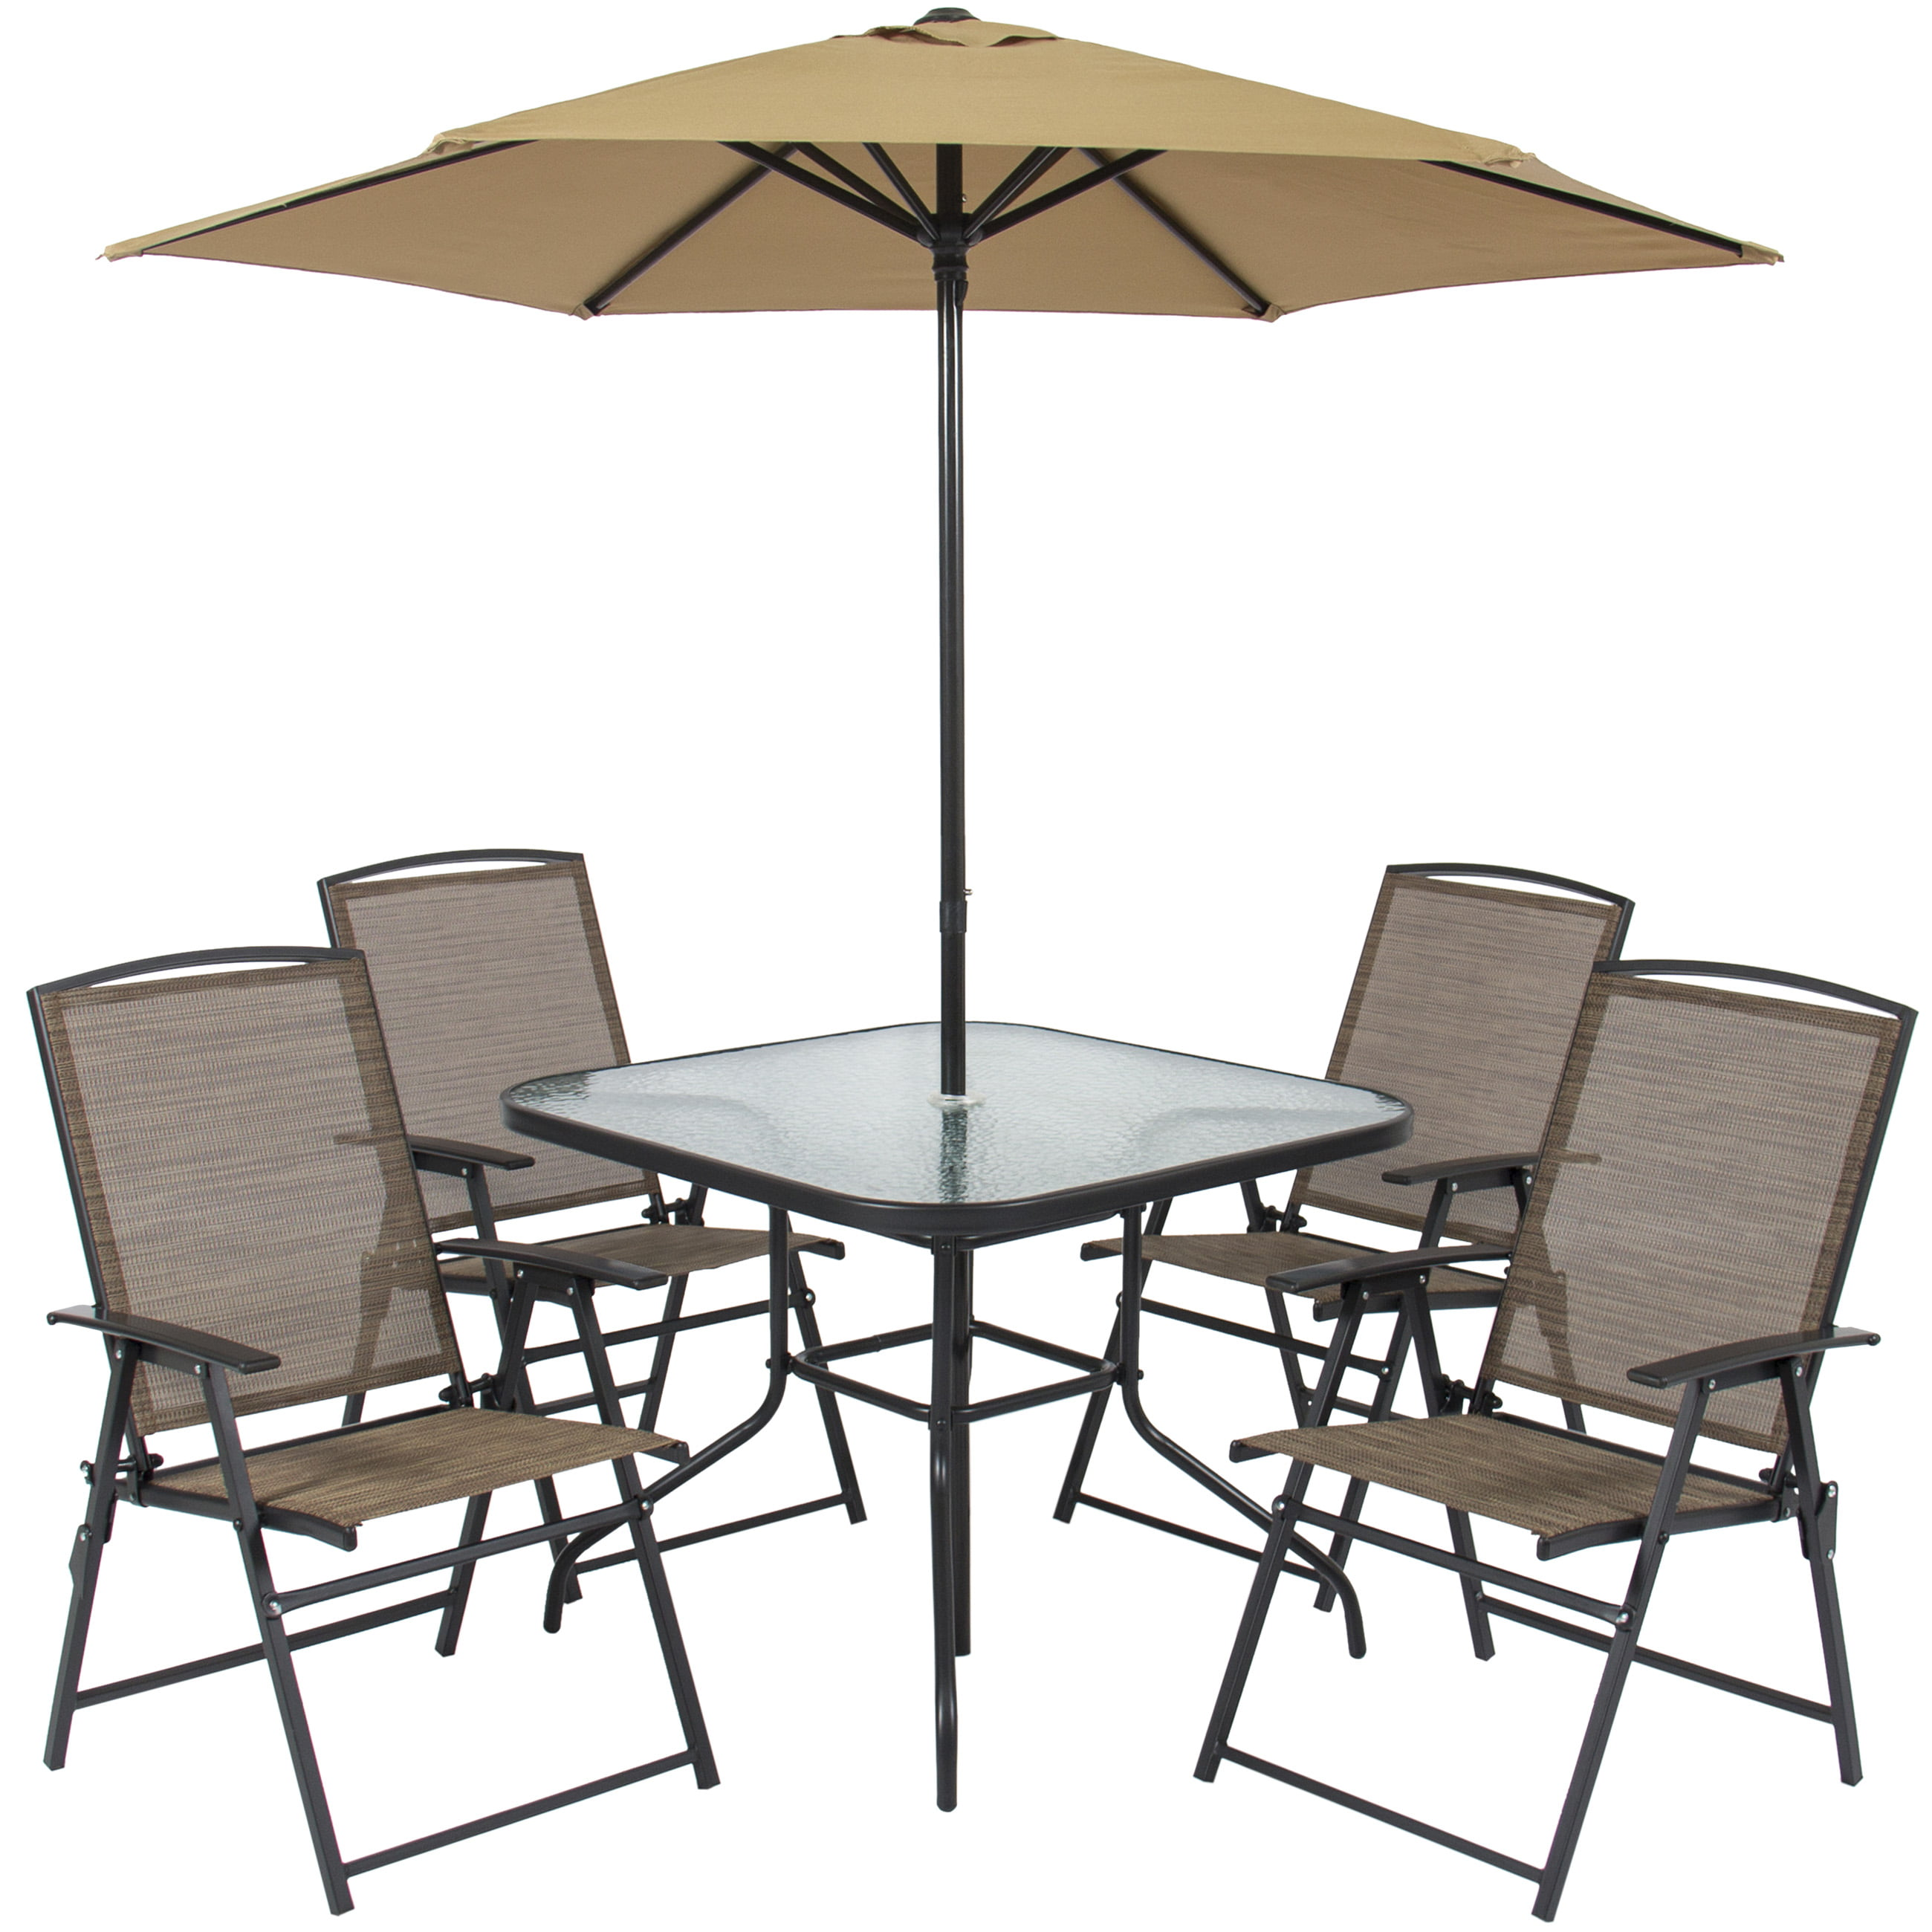 best choice products 6pc outdoor folding patio dining set w table 4 chairs umbrella and built in base walmartcom - Garden Furniture 4 Seater Sets